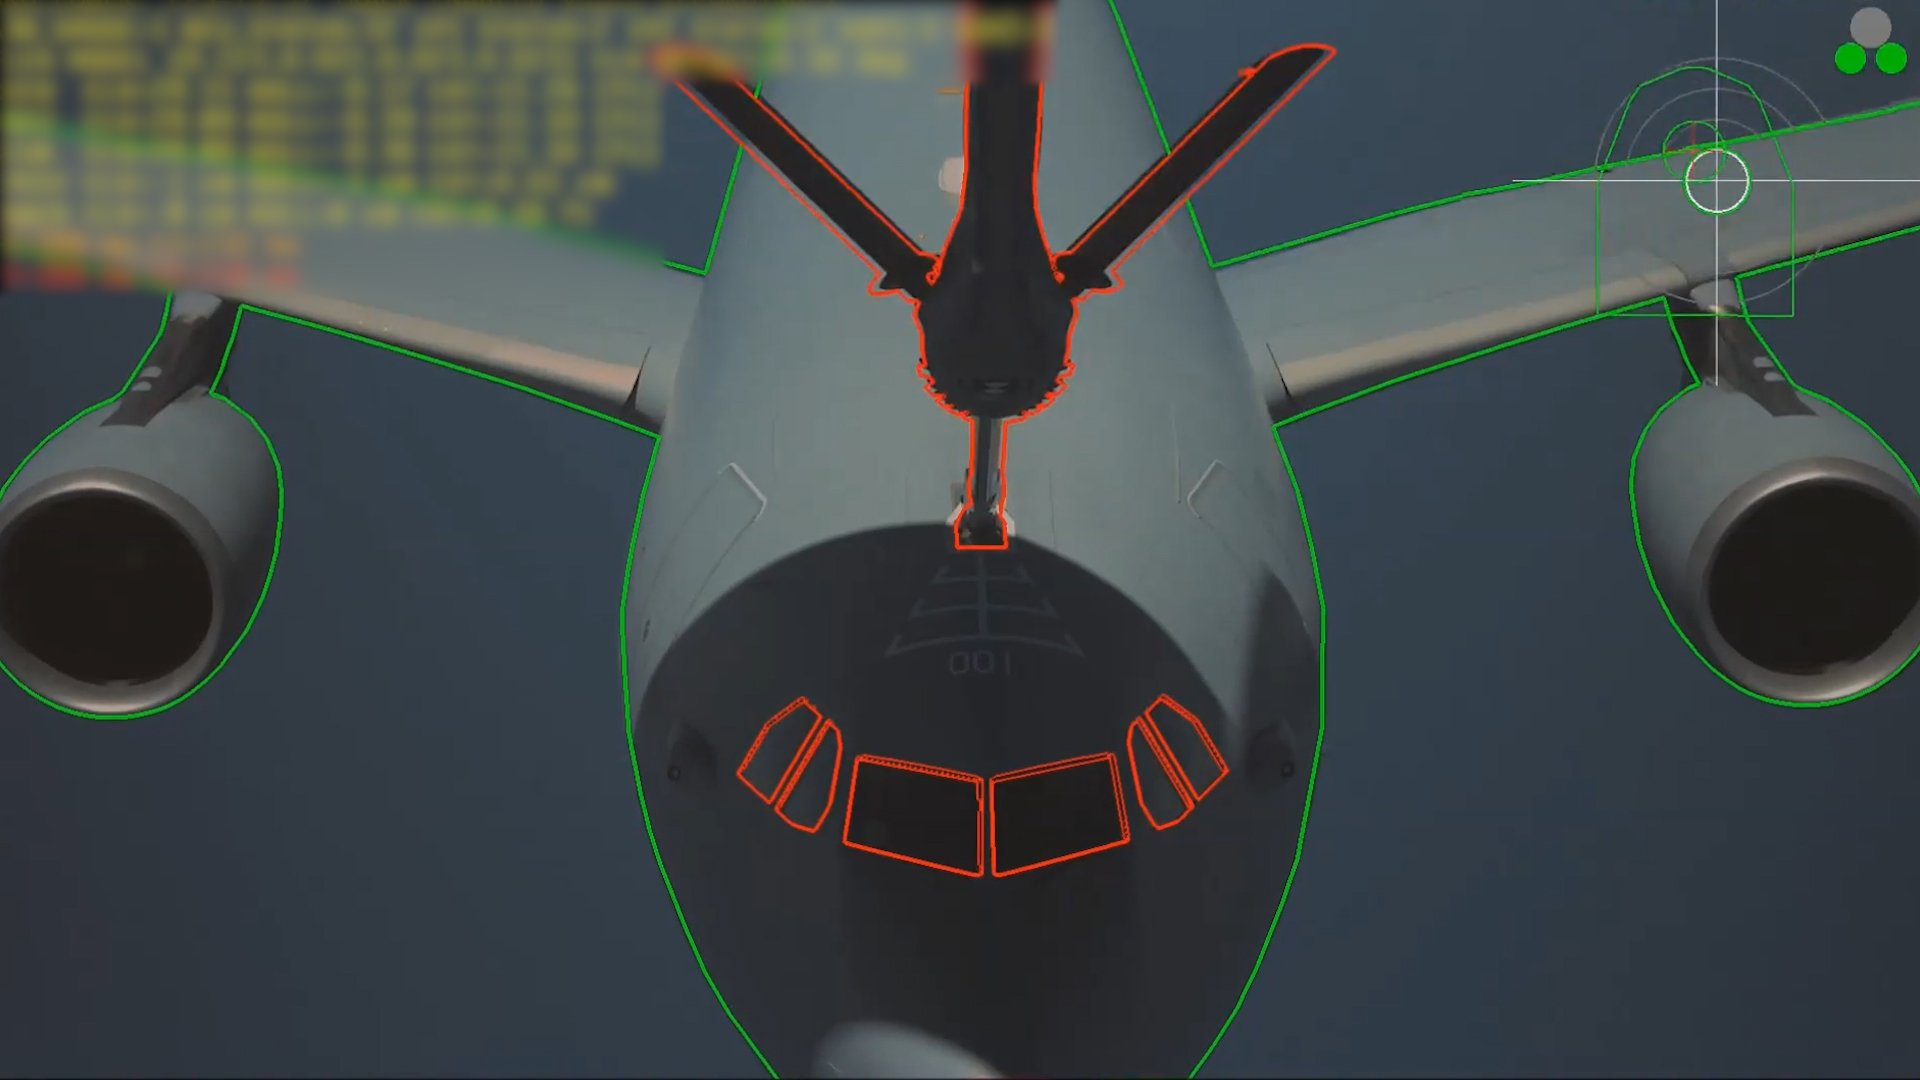 Airbus performs world's first automatic air-to-air refuelling contact with large aircraft receiver